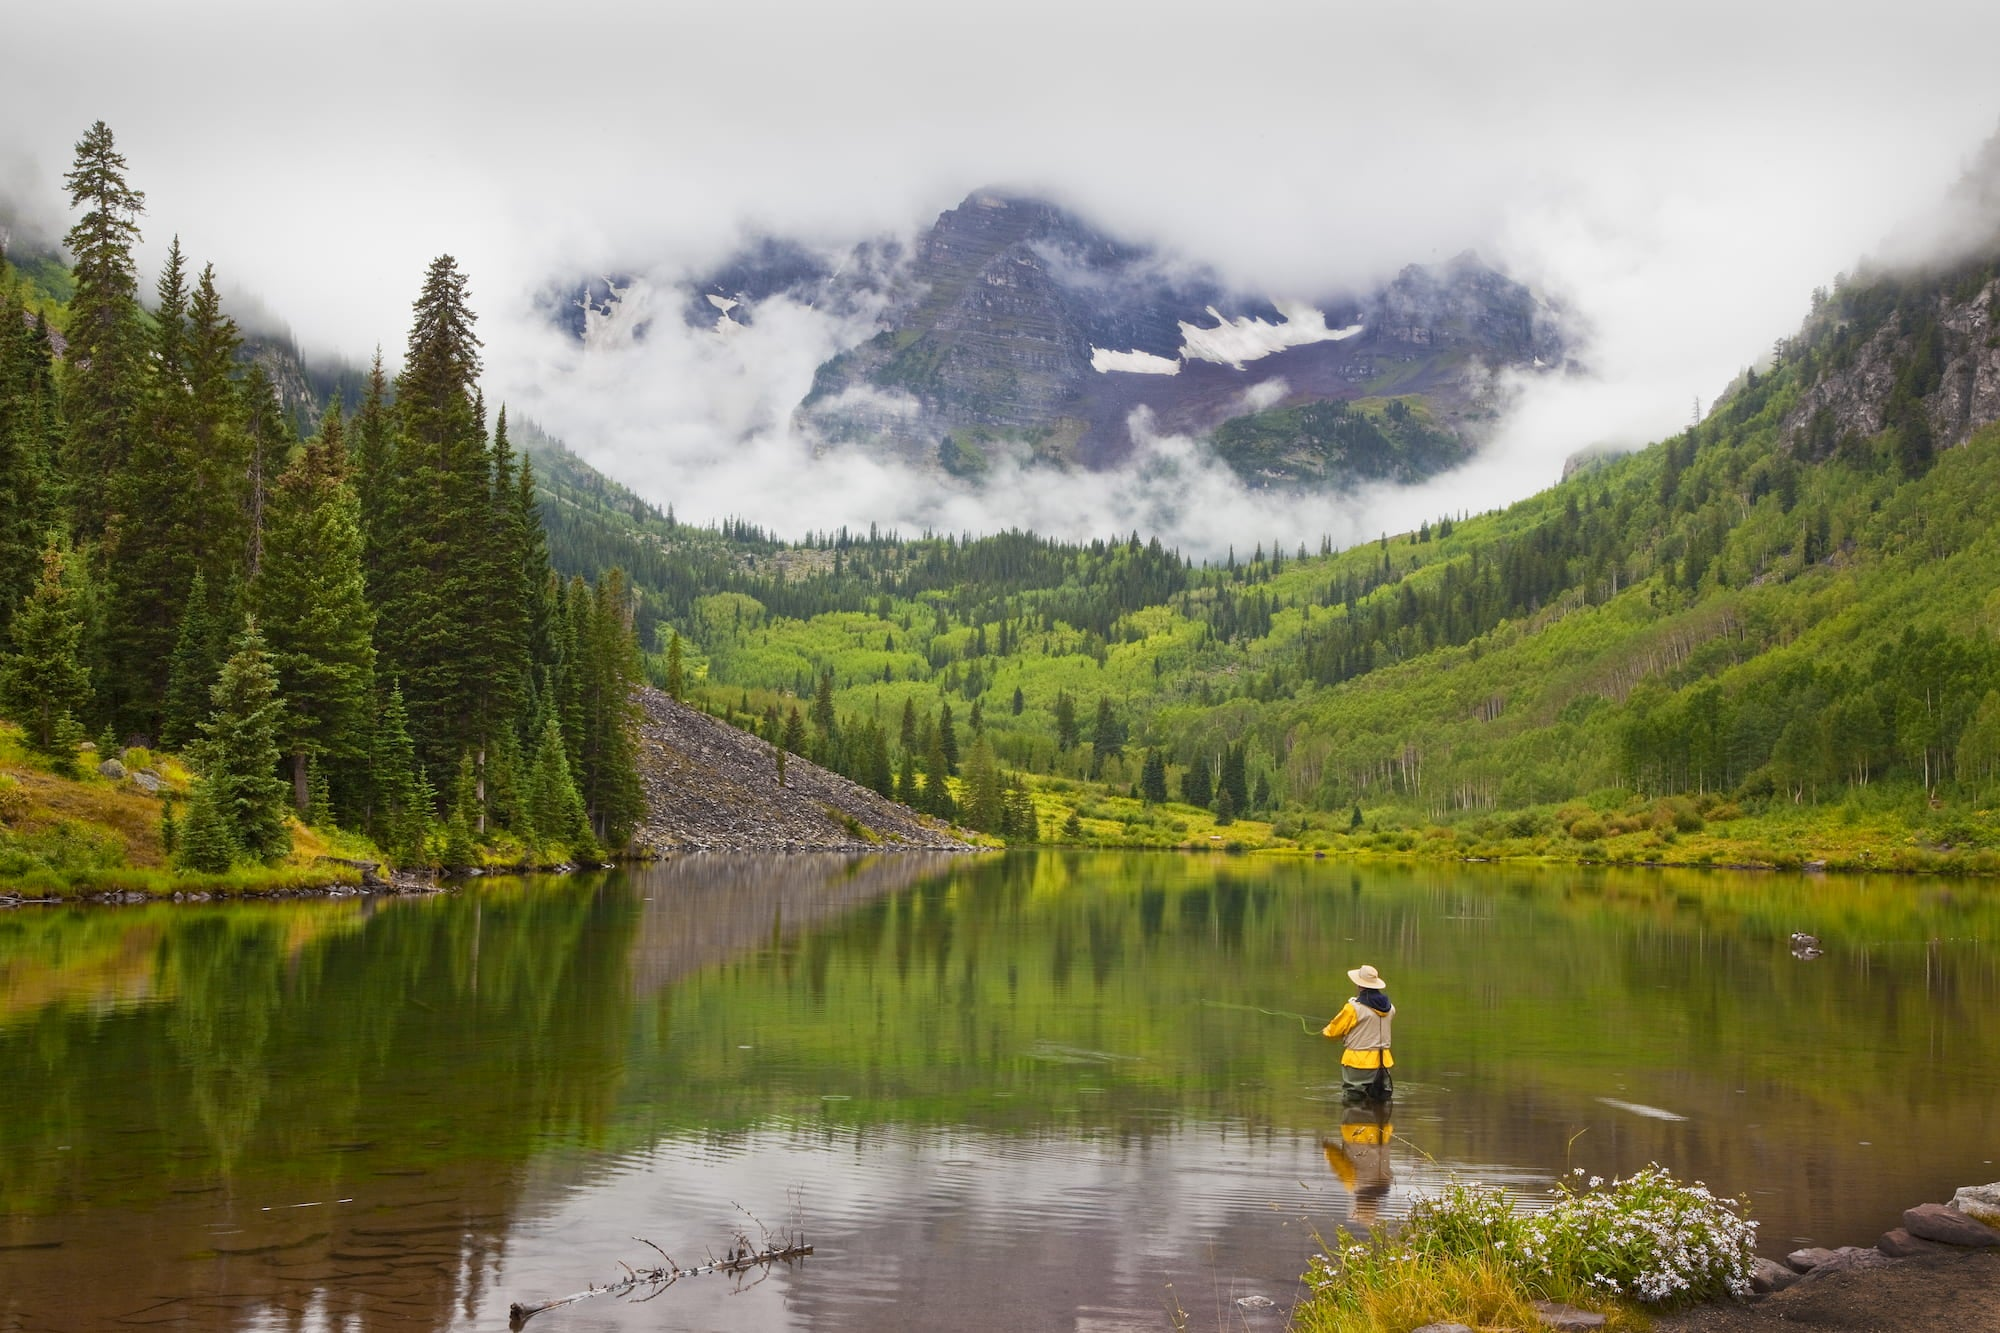 Fly fisher wading in a river below the Colorado rockies.